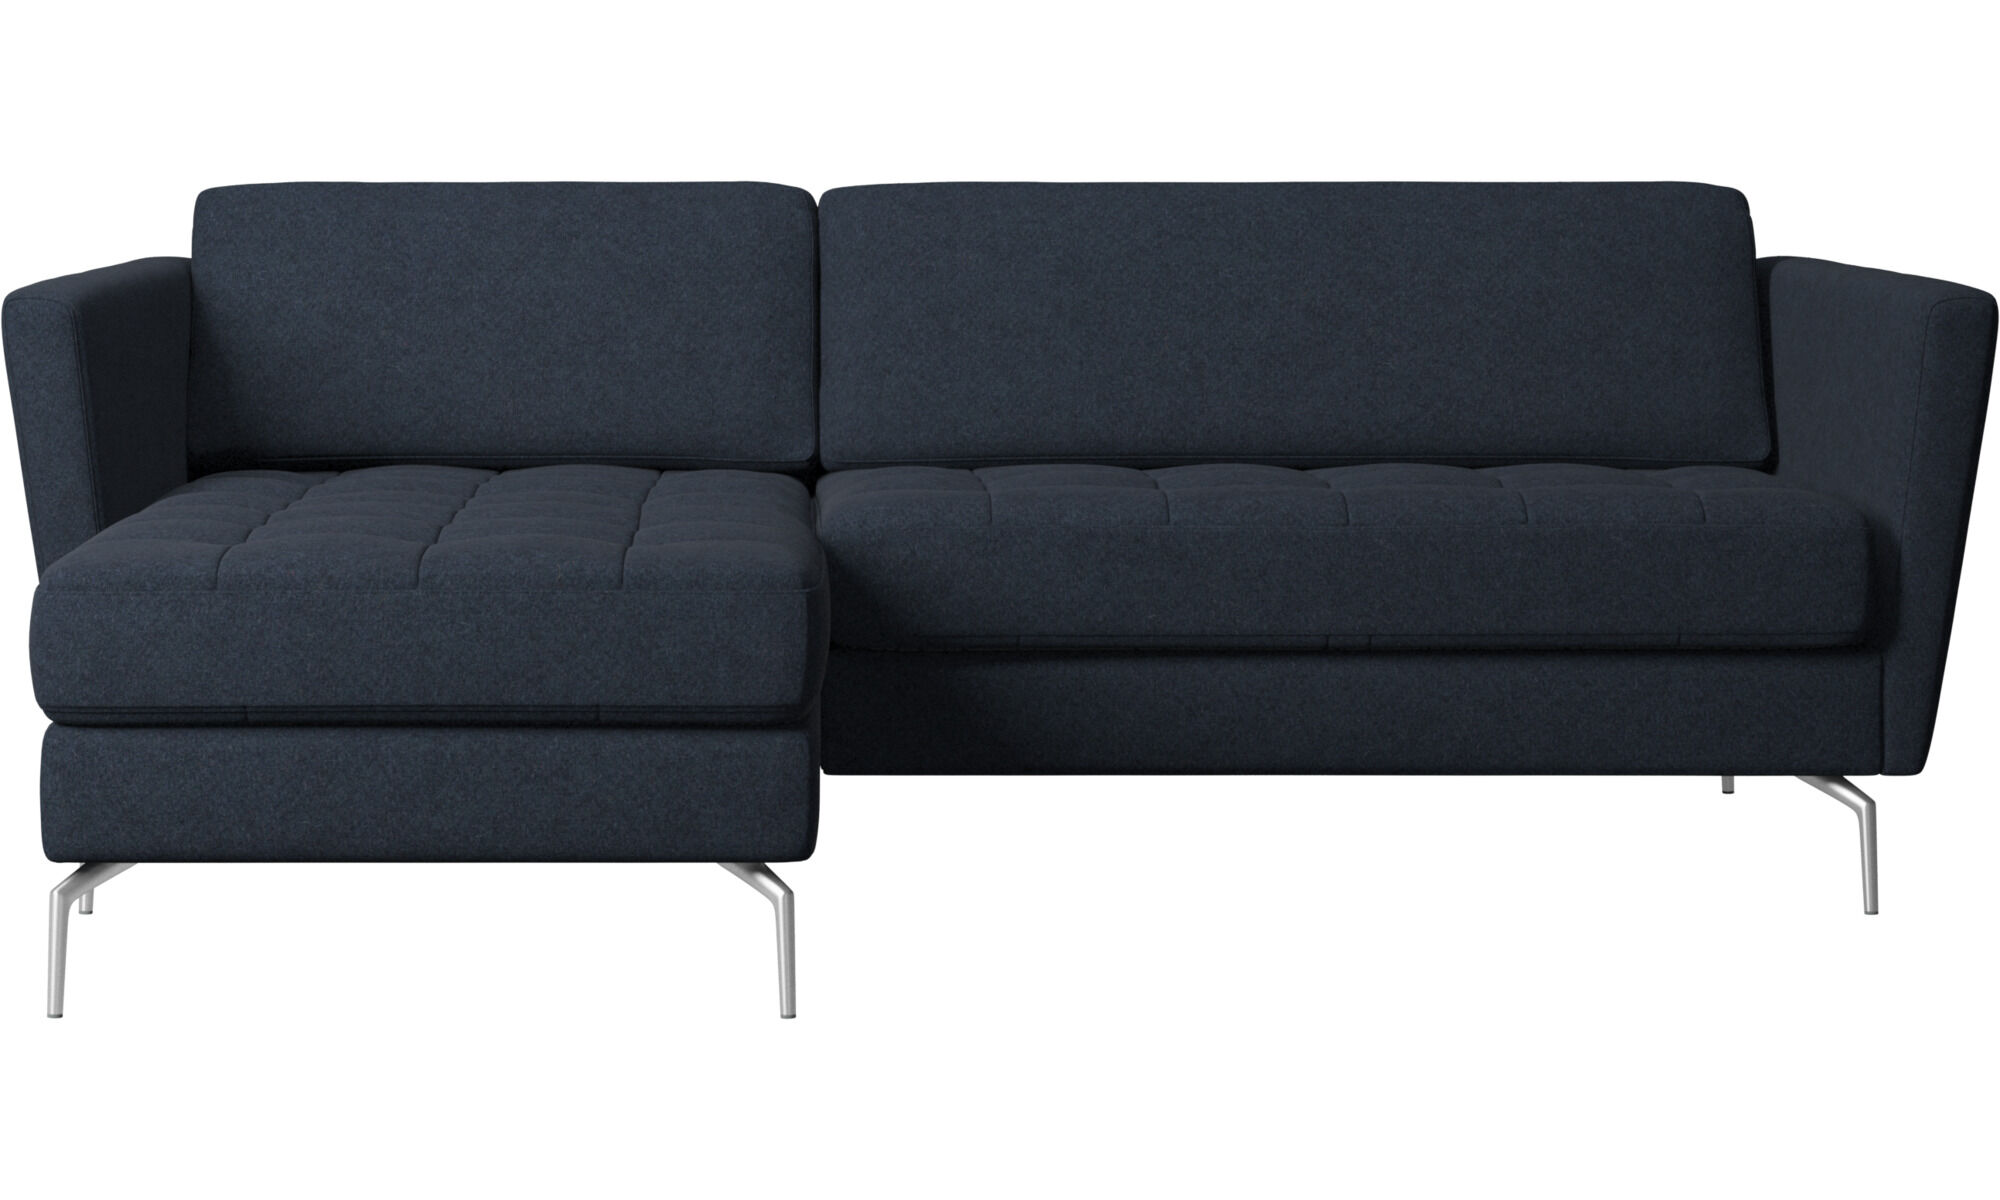 Chaise Lounge Sofas   Osaka Sofa With Resting Unit, Tufted Seat   Blue    Fabric